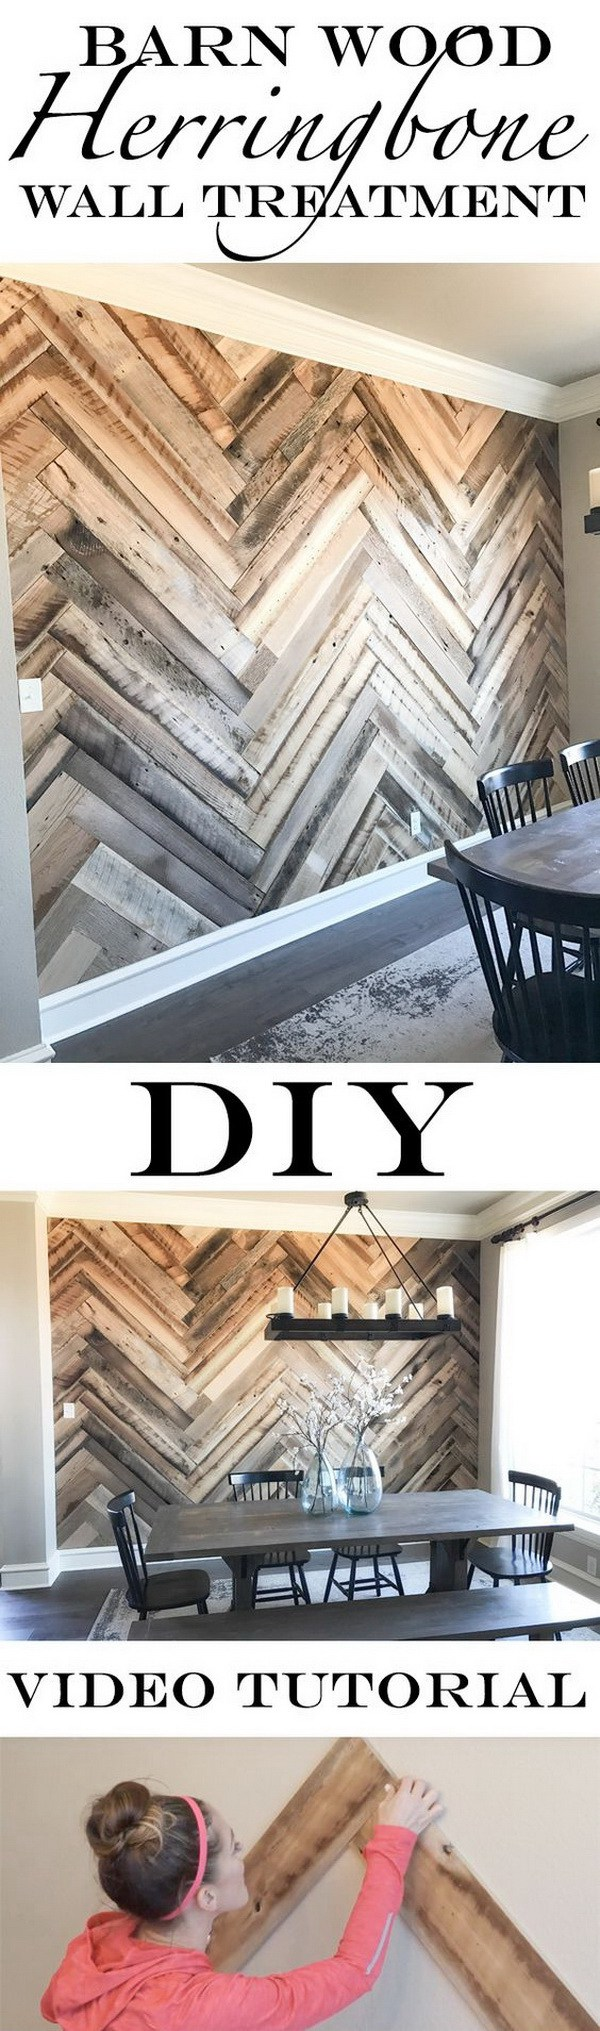 DIY Barn Wood Herringbone Wall Treatment. Create a herringbone reclaimed wood plank wall and add more character to any room in your home with this easy DIY barn wood herringbone wall treatment.